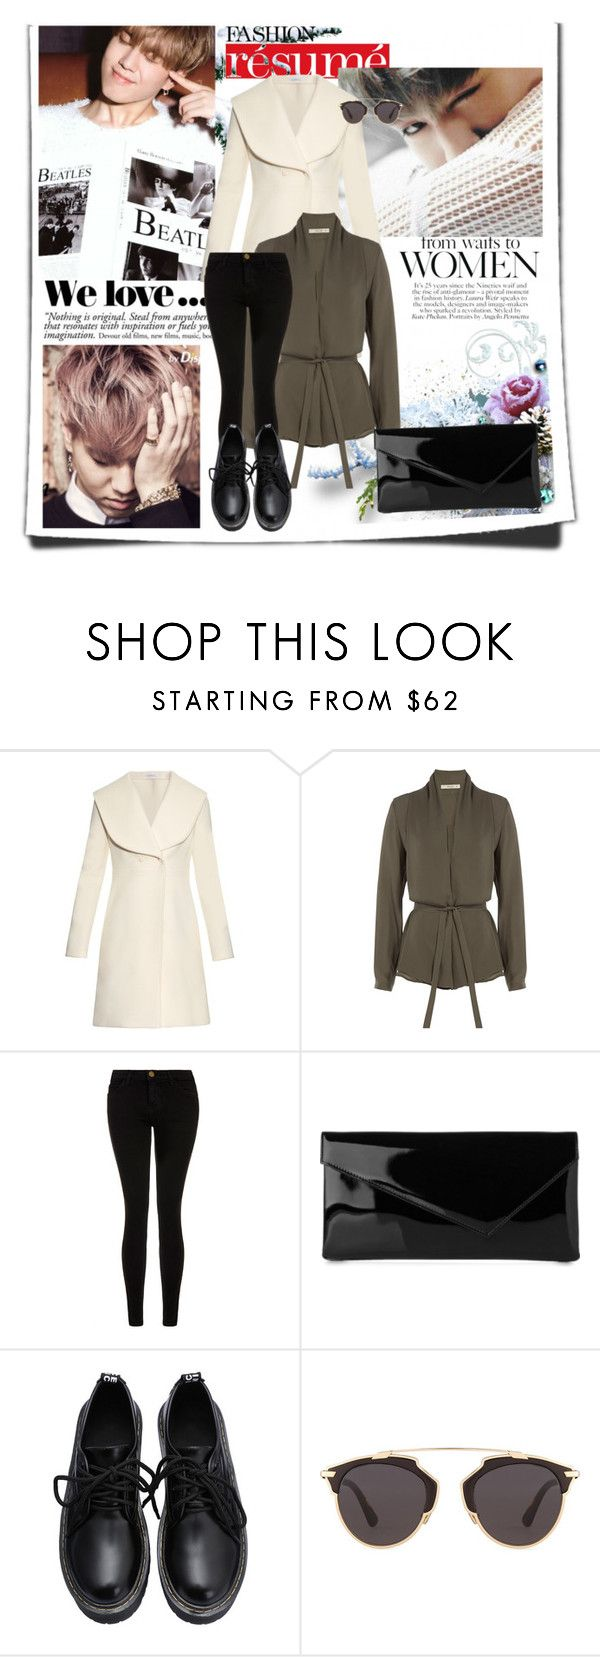 """"""".193"""" by i-love-louis-thetommo-tomlinson on Polyvore featuring J.W. Anderson, Etro, Current/Elliott, L.K.Bennett, Christian Dior, Zara, women's clothing, women's fashion, women and female"""